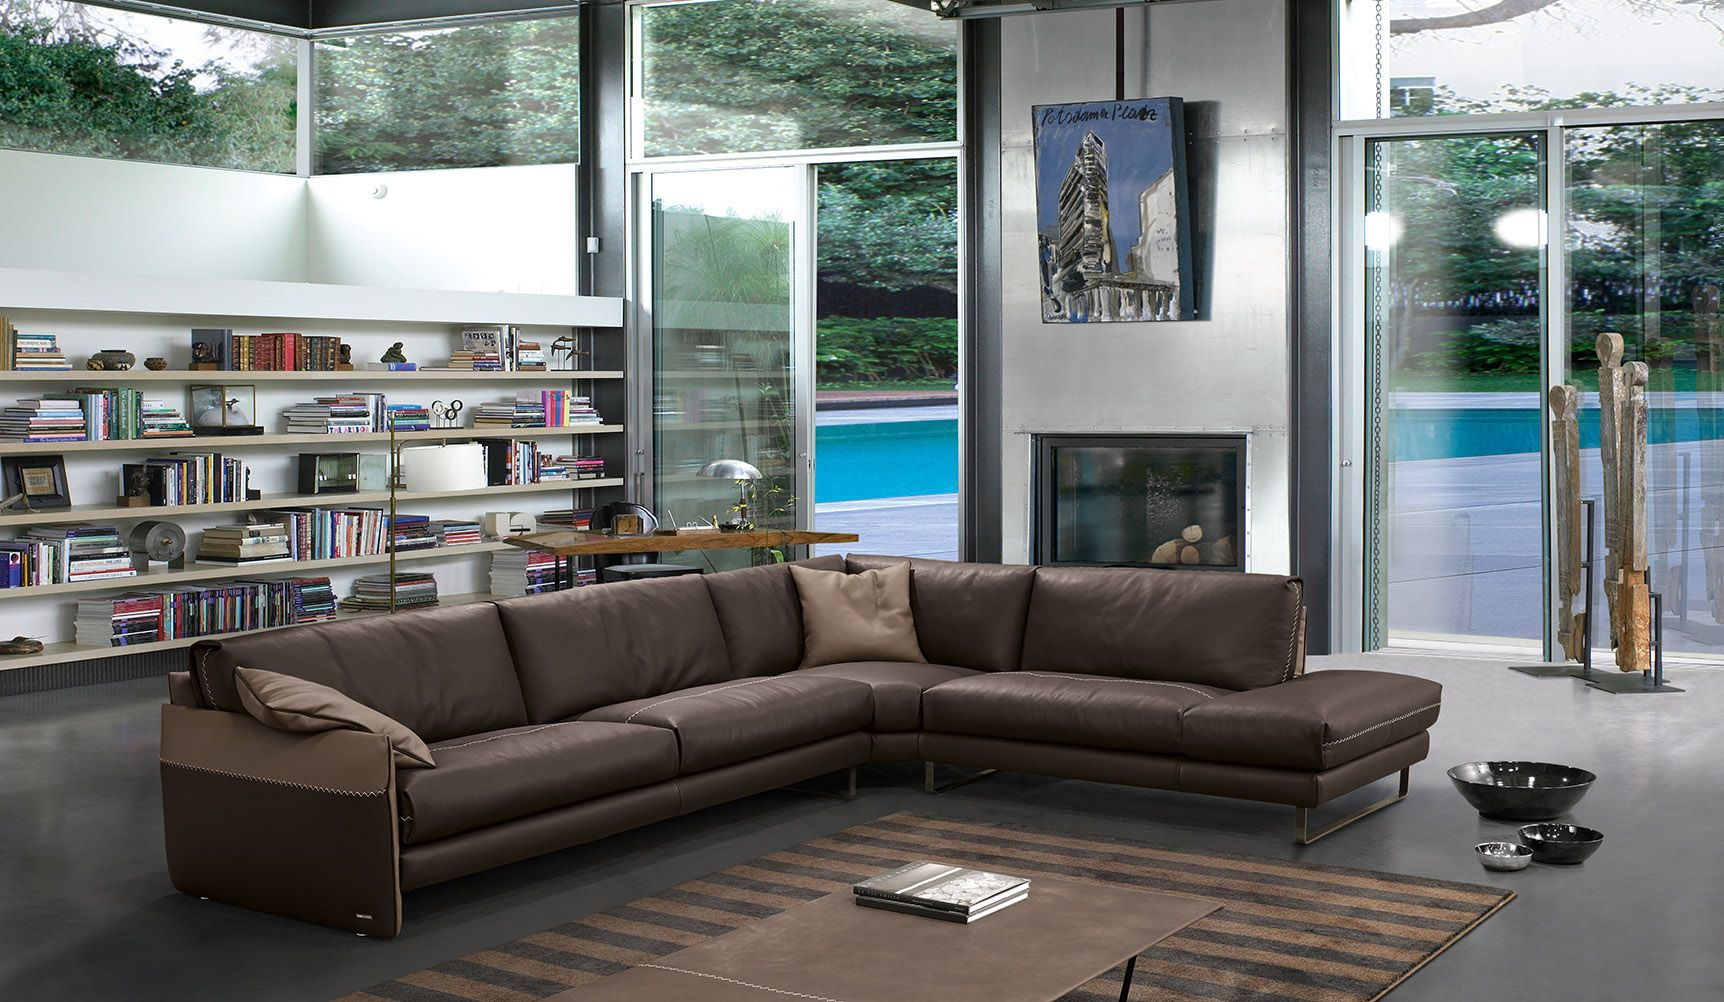 sectional sofas nyc showroom outdoor patio furniture cushion 5pc rattan wicker sofa set mood by gamma two tones leather products sectionals in lewis italian